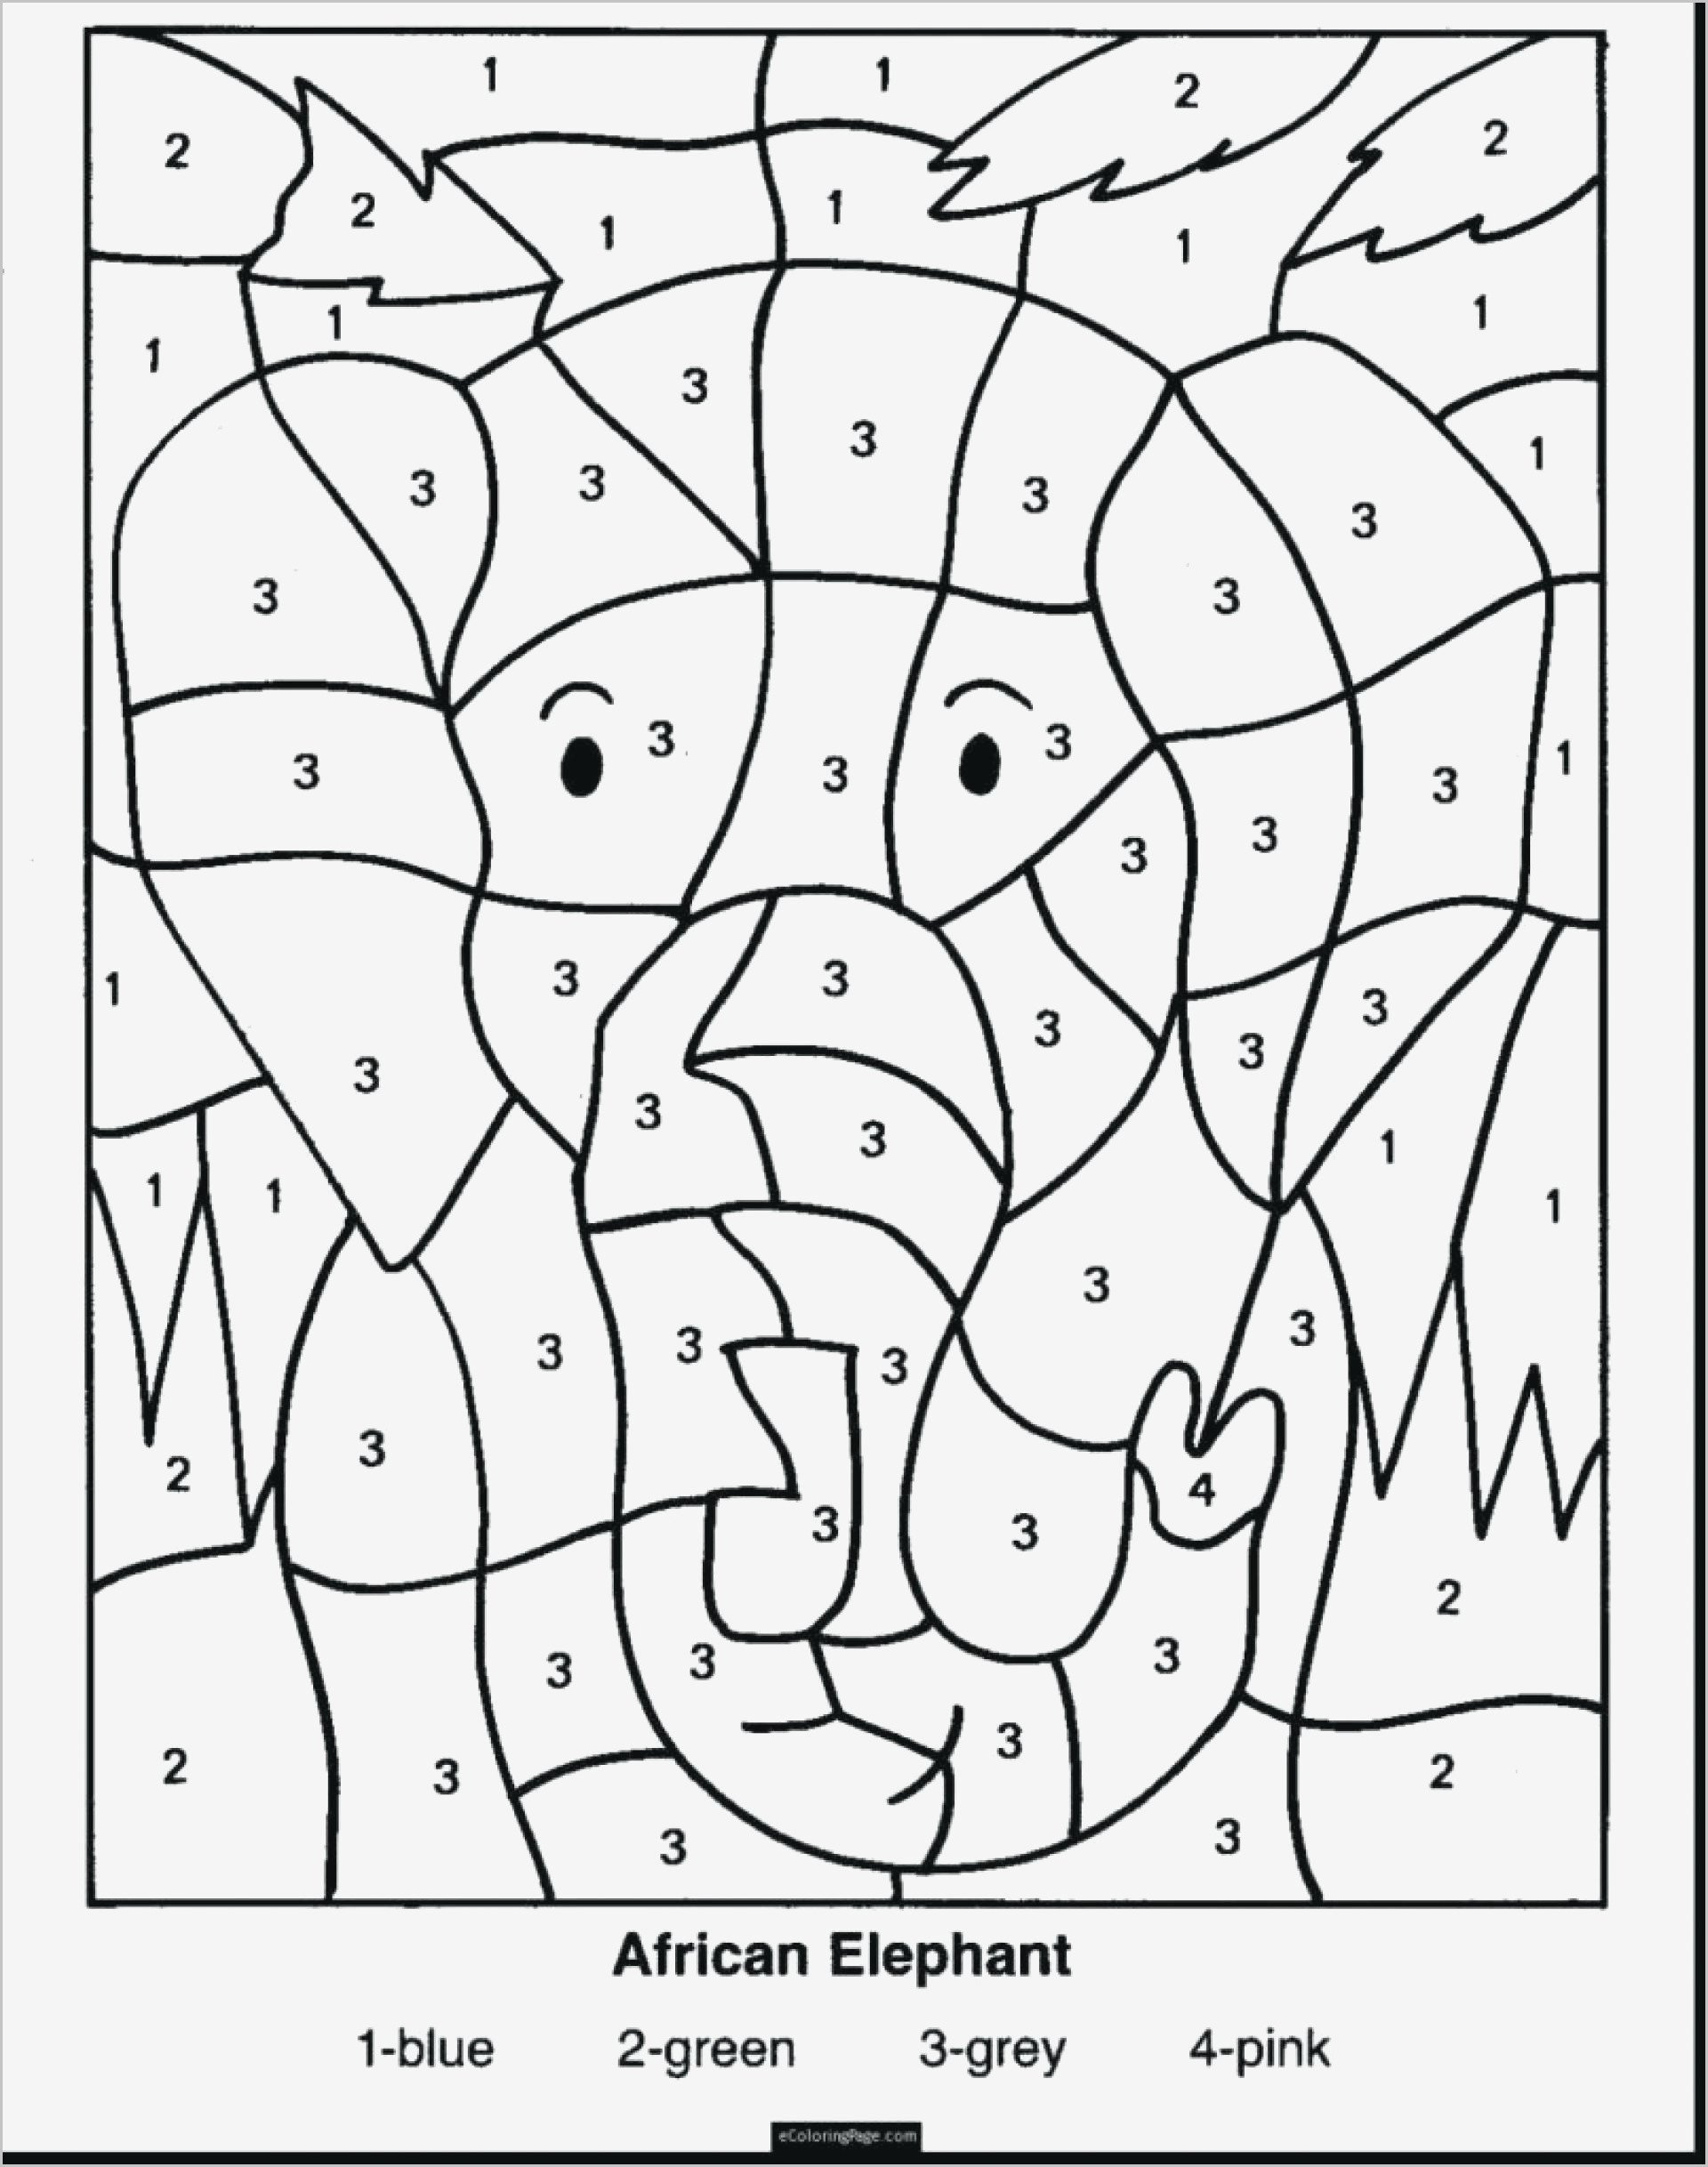 rounding numbers worksheets printable and activities 3rd grade coloring fun math problems